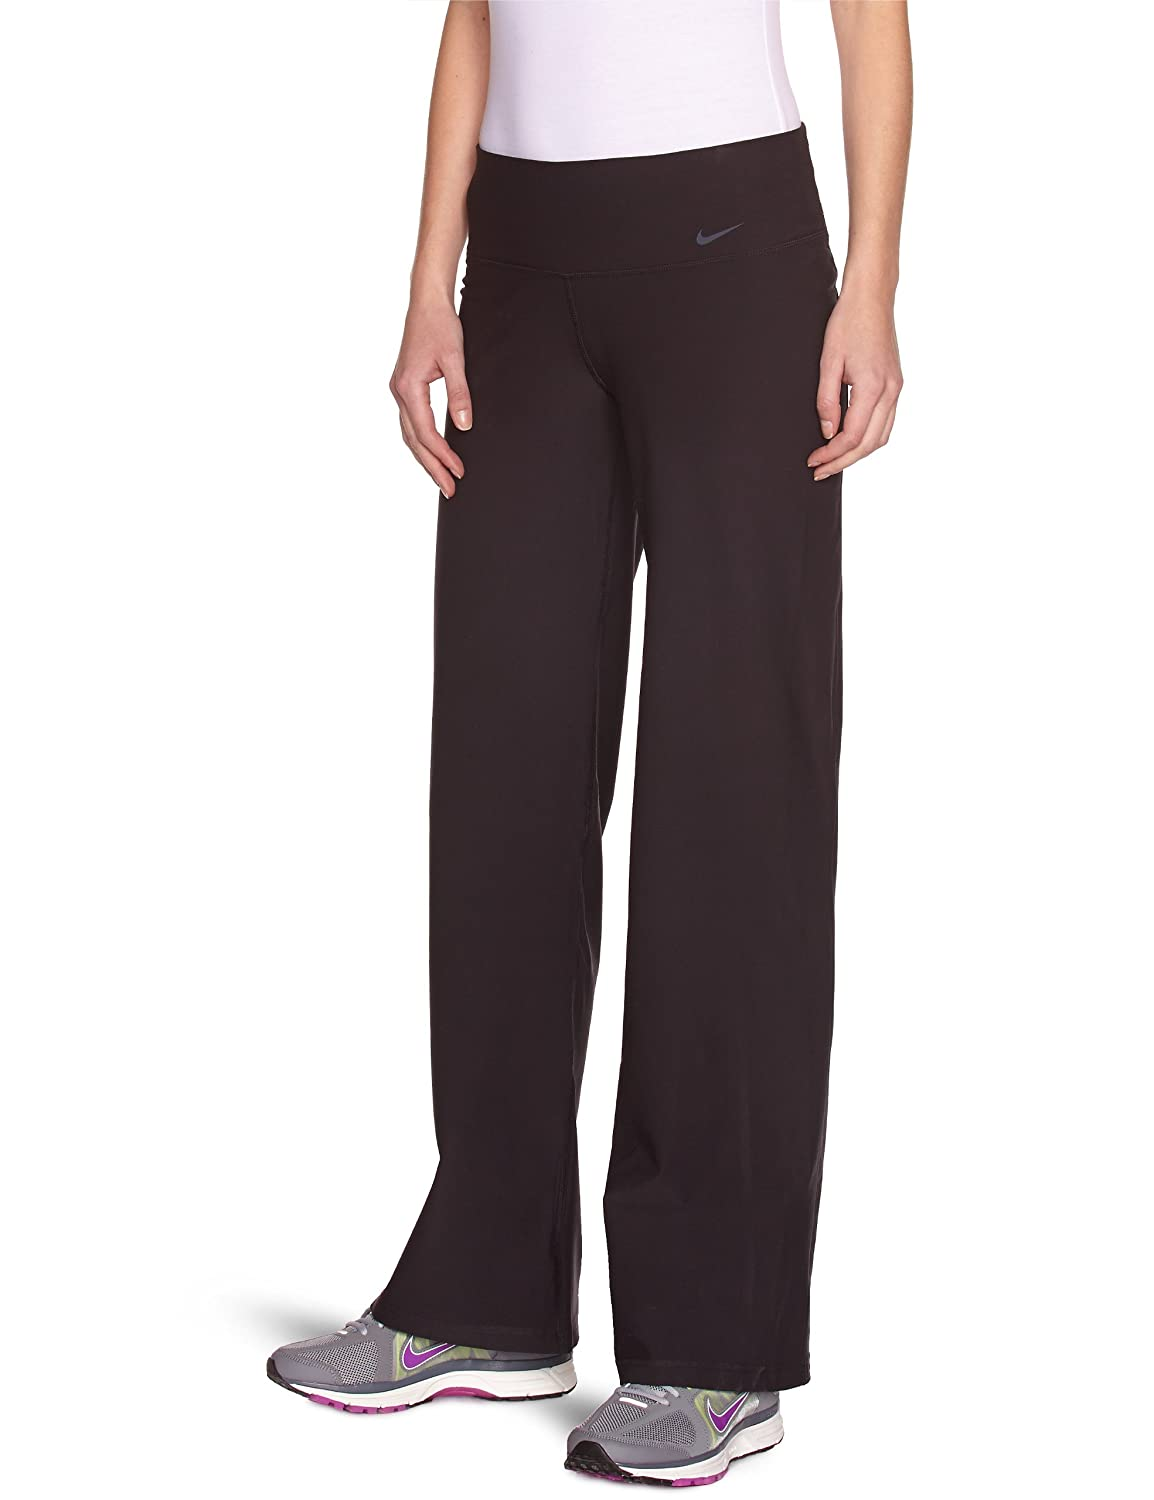 Amazon.com: Nike Women's Legend Poly Workout Pants - X Small - Black:  Sports & Outdoors